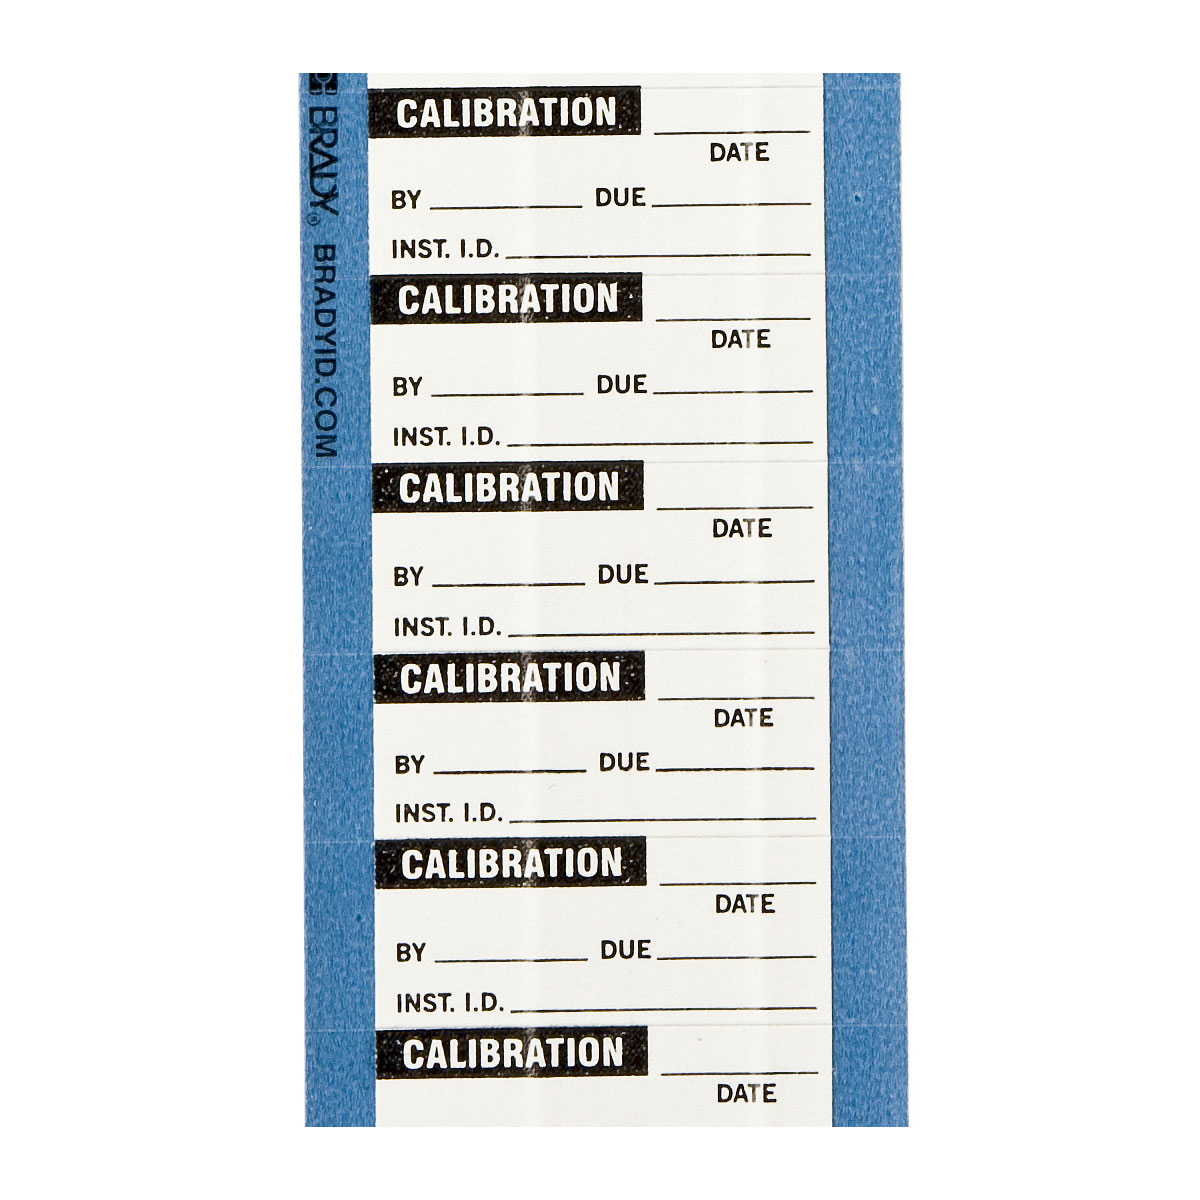 brady label templates - brady part wo 64 calibration labels